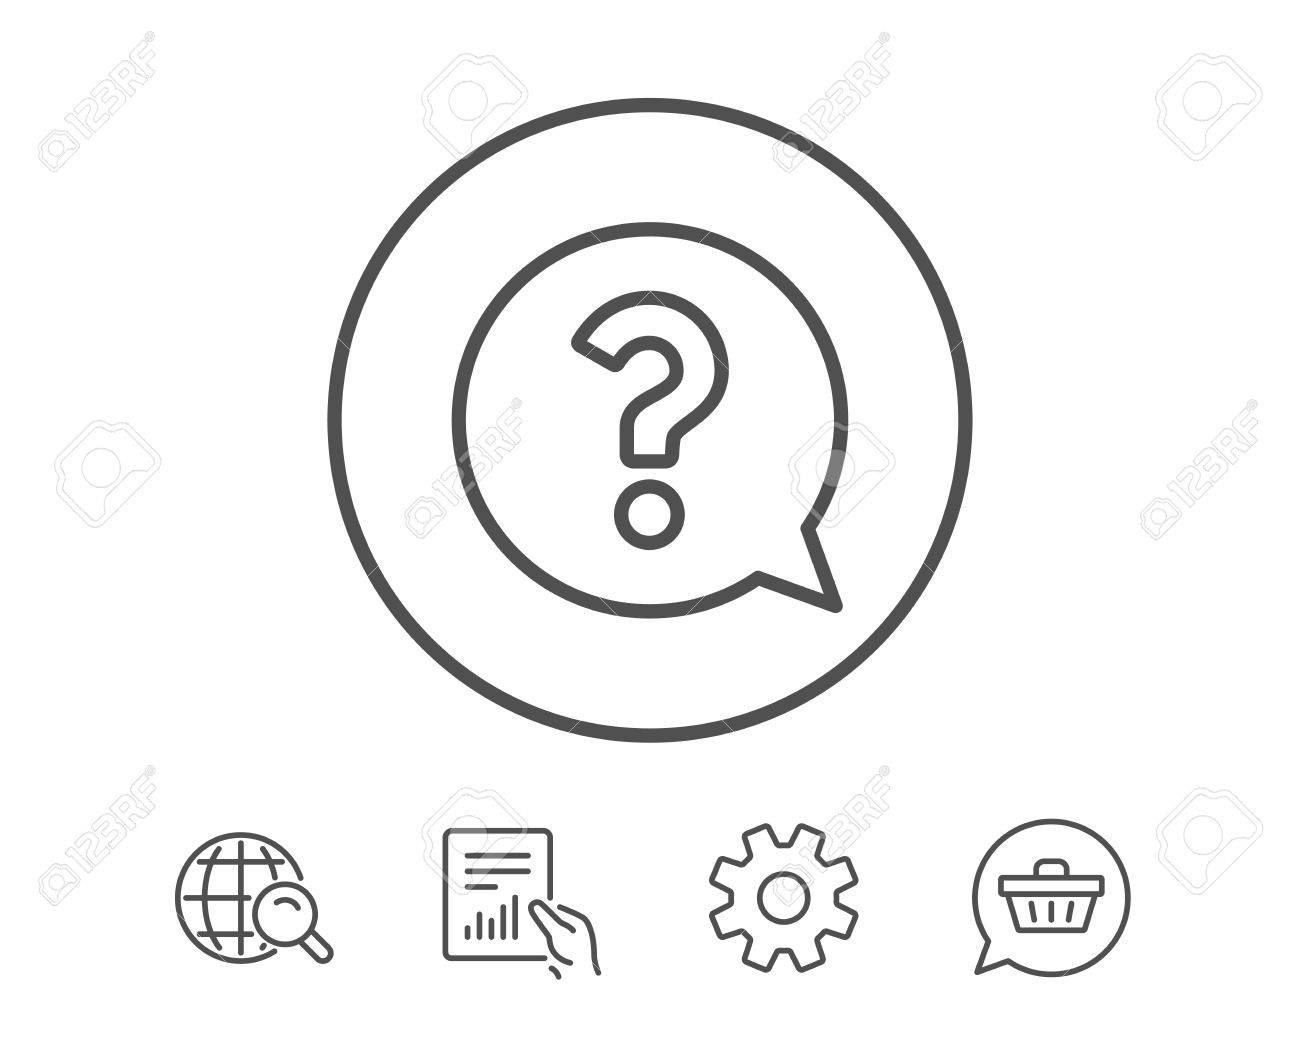 Question mark line icon help speech bubble sign faq symbol question mark line icon help speech bubble sign faq symbol hold report biocorpaavc Image collections